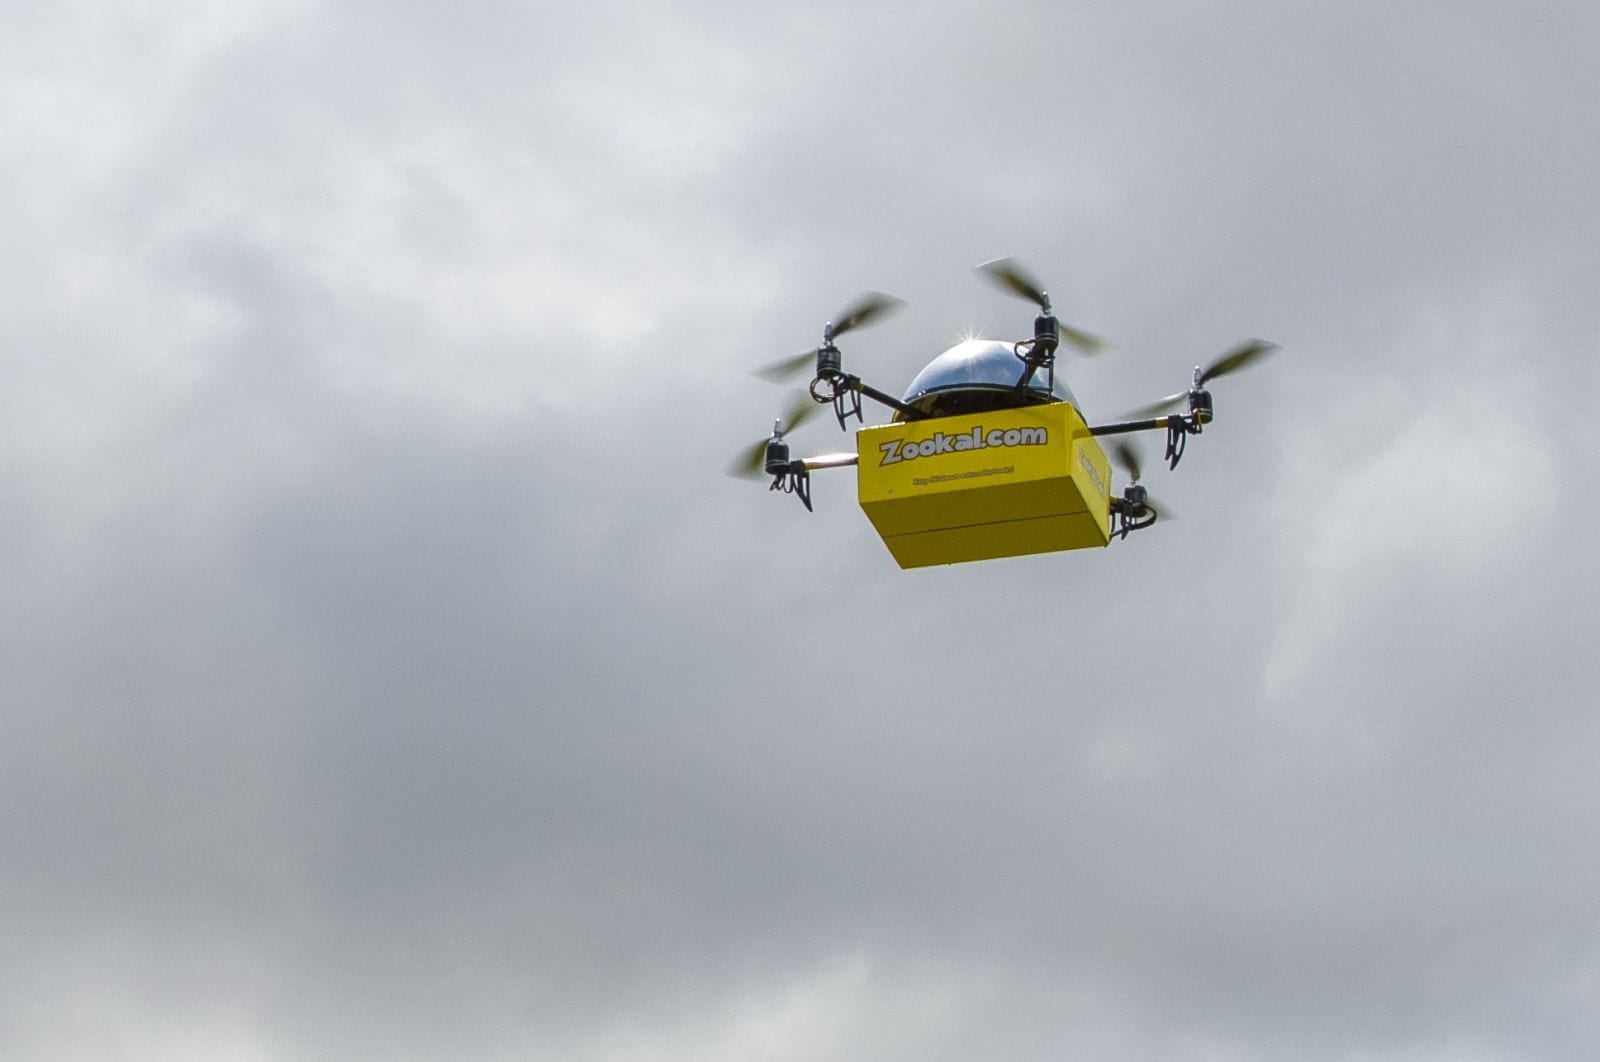 Doctors Without Borders Is Experimenting With Delivery Drones To Battle An Epidemic